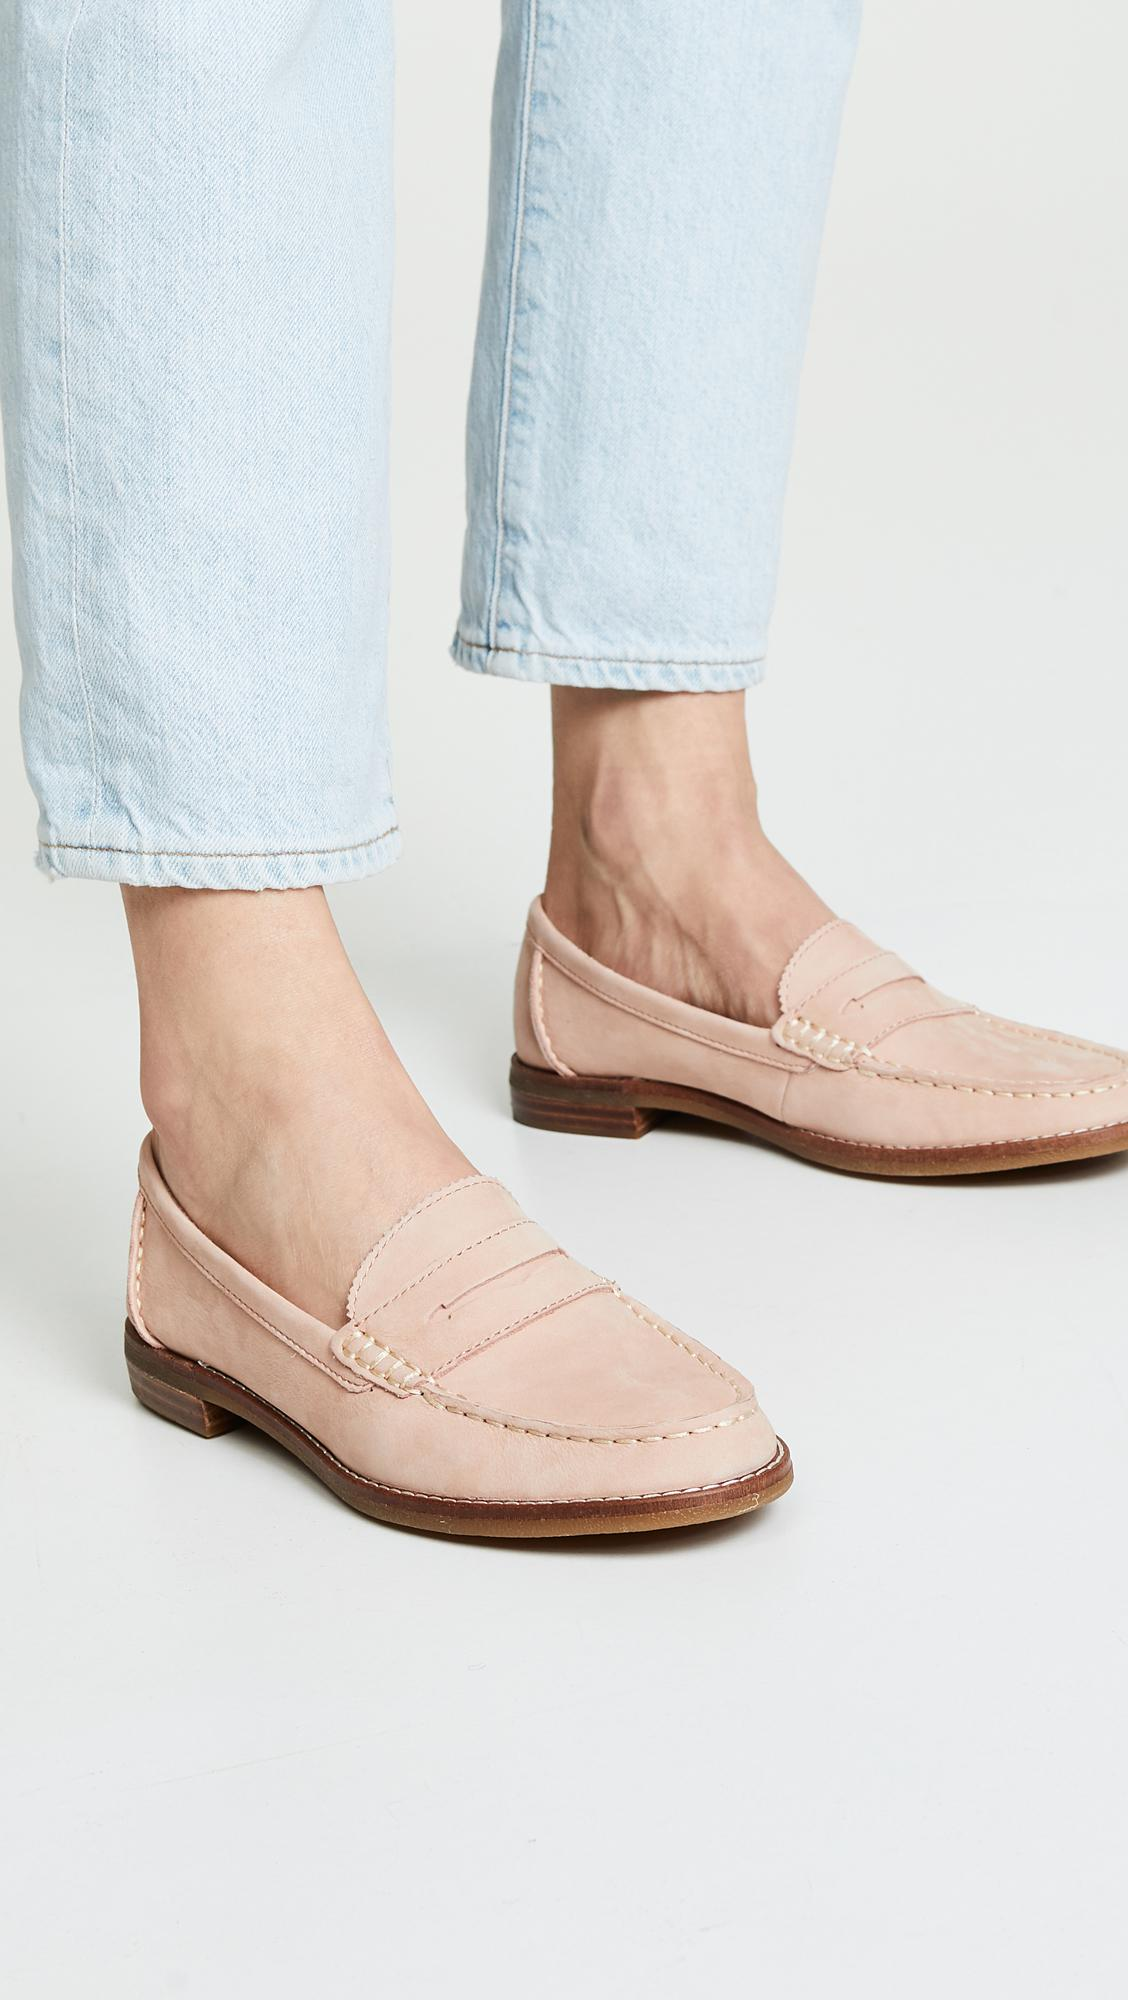 6d74ca0075c Lyst - Sperry Top-Sider Seaport Penny Loafers in Pink